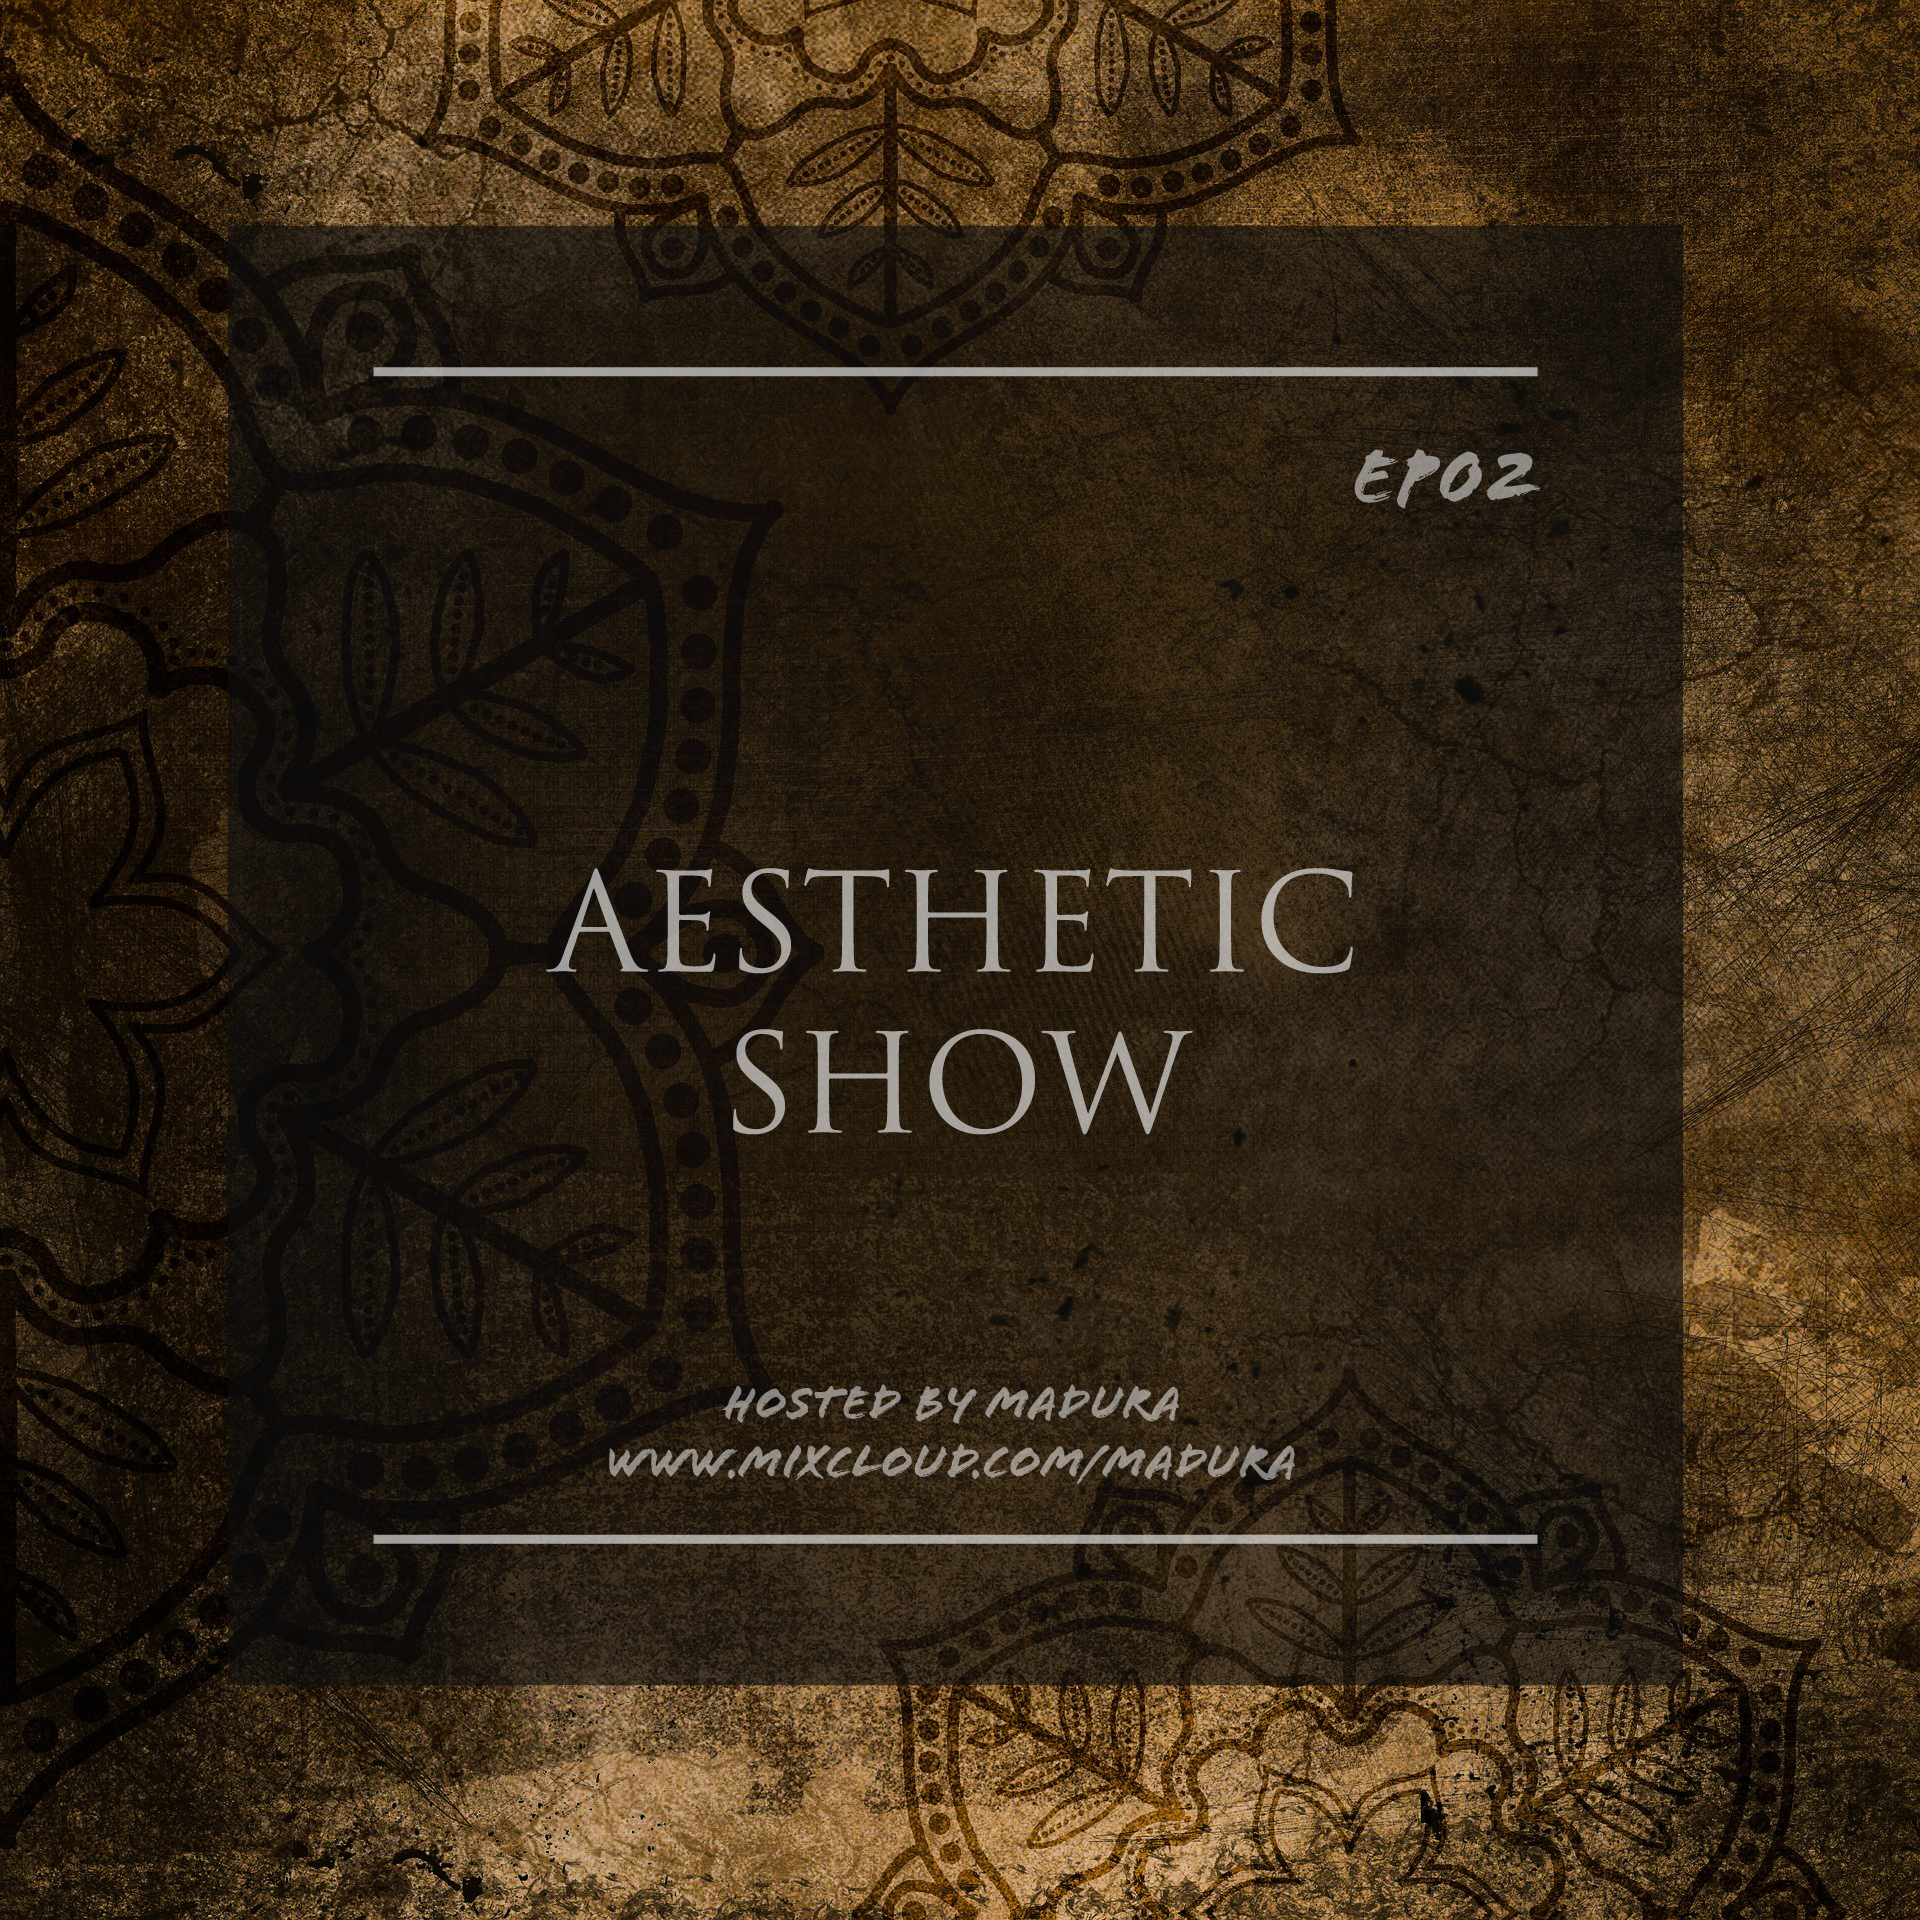 Aesthetic Show :: Aesthetic Show Ep2 (aired on July 3rd, 2020) banner logo